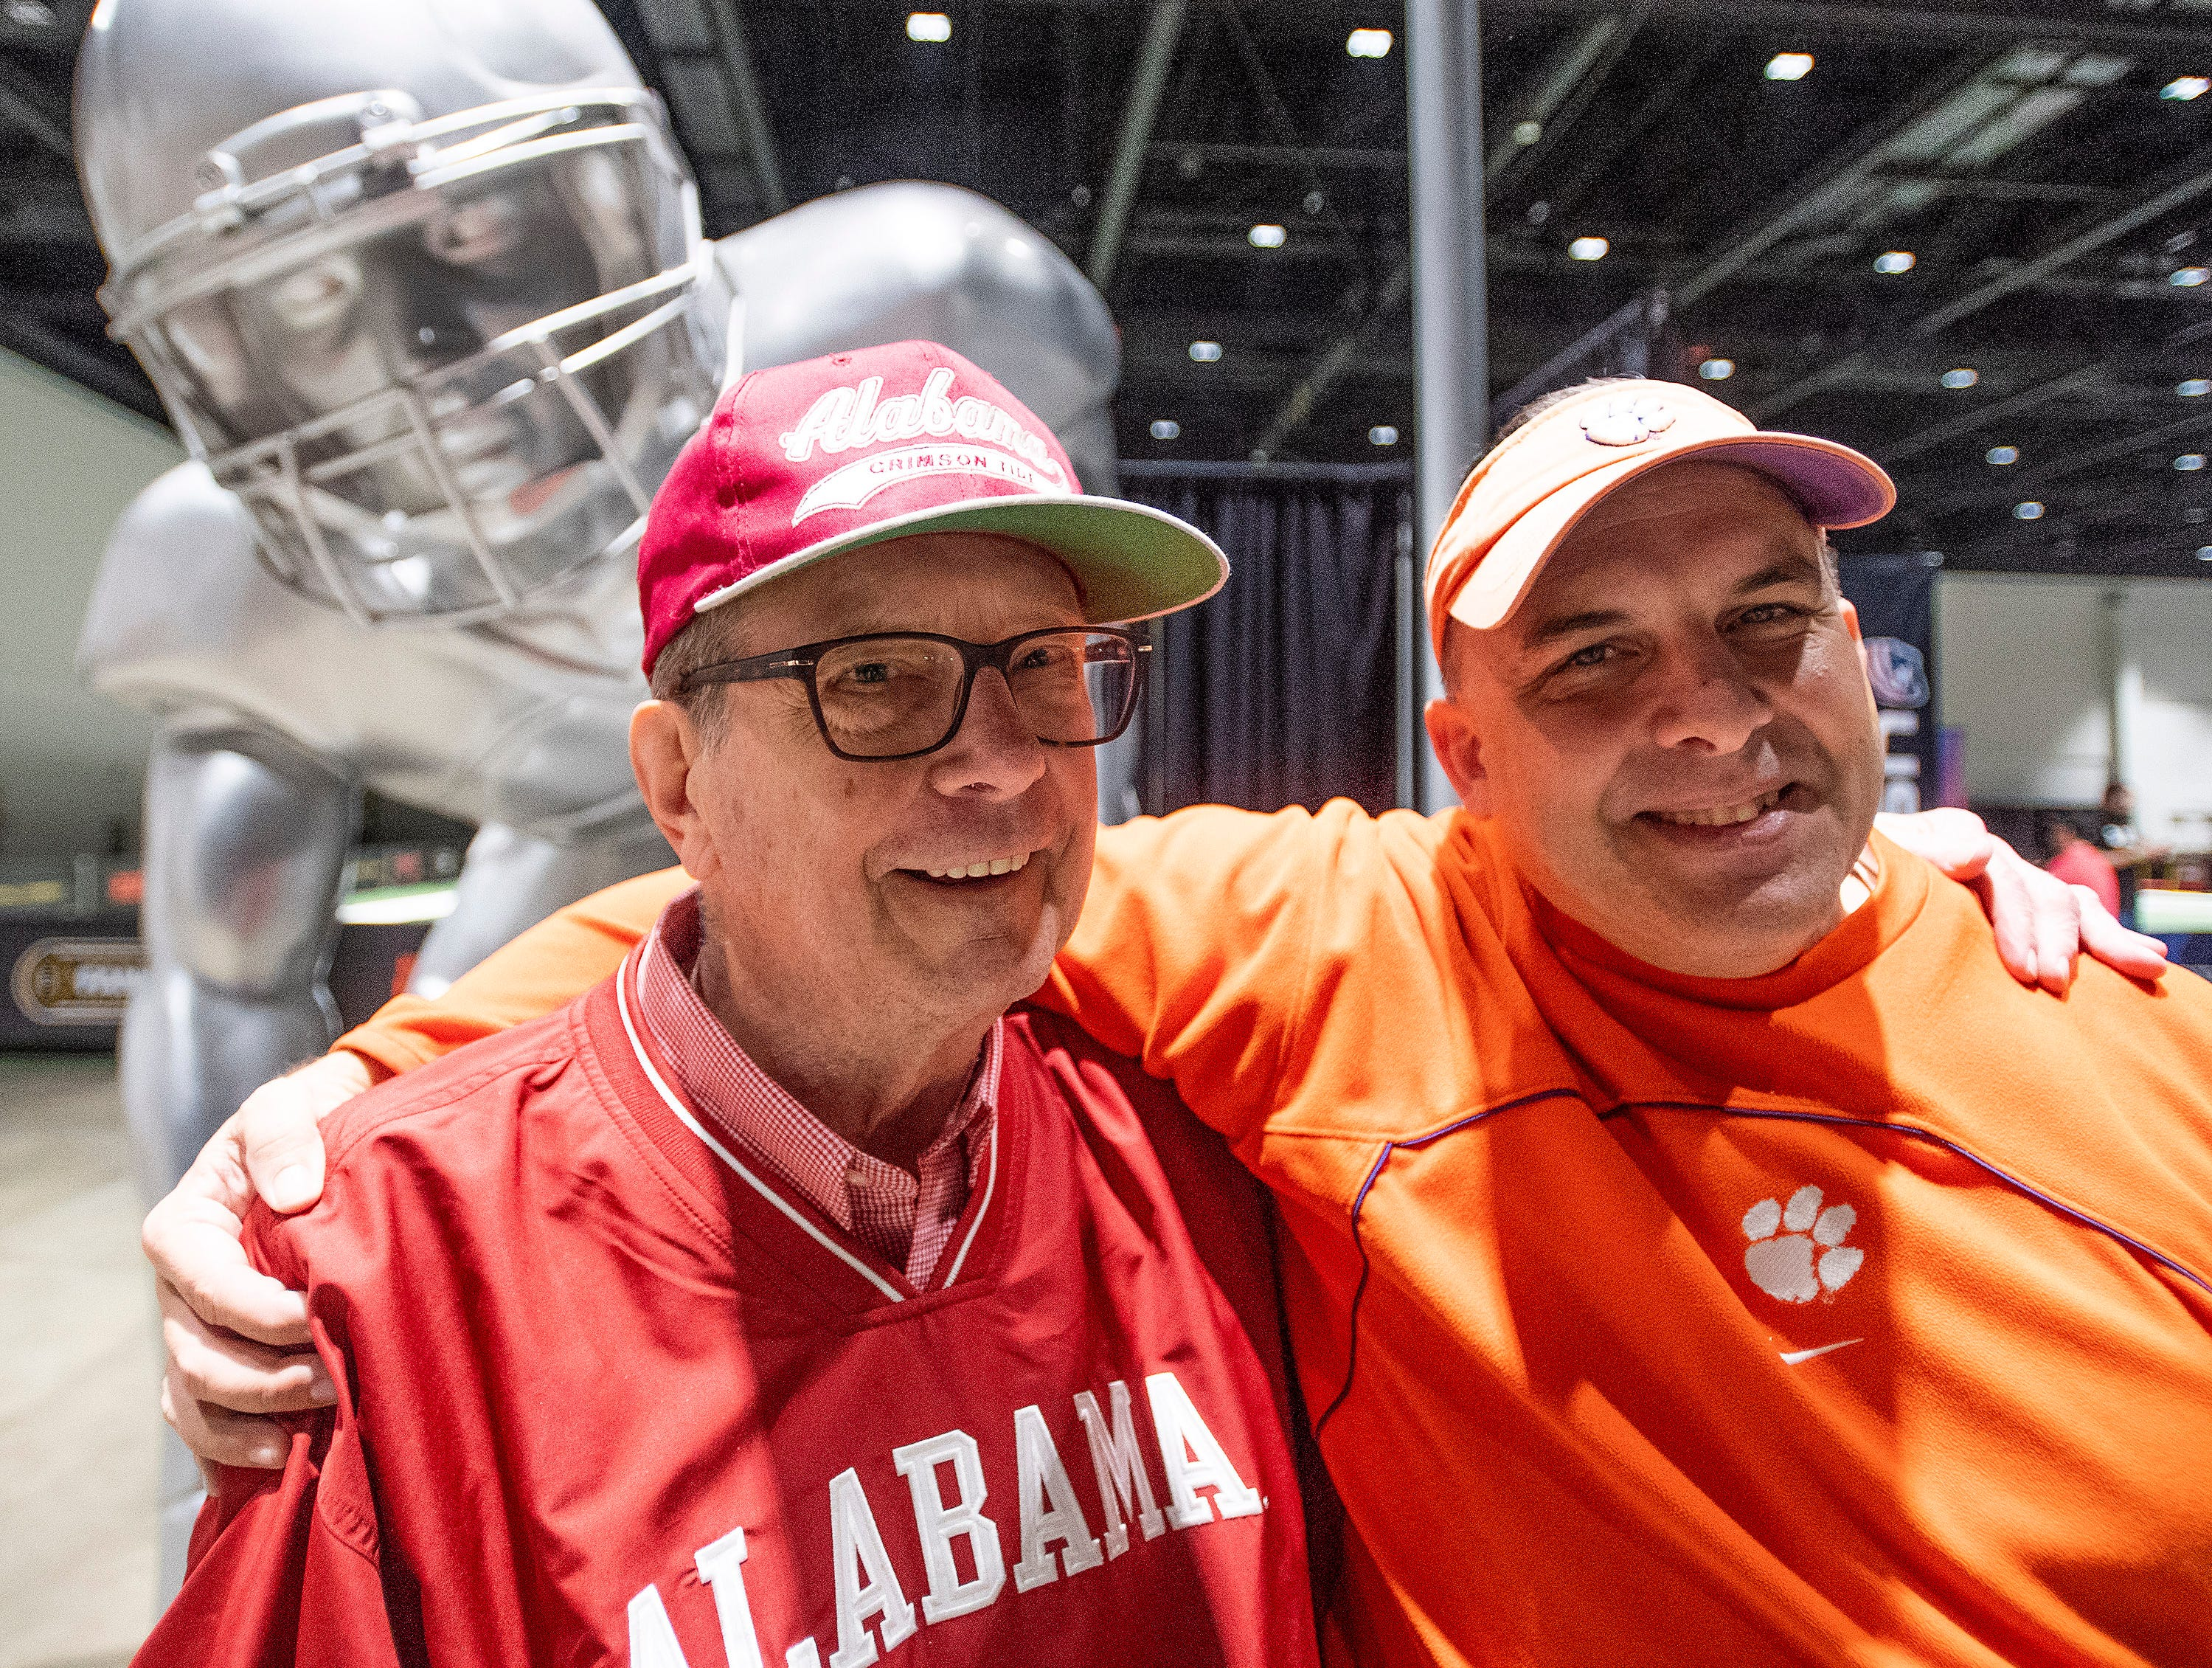 Alabama fan Charles Edgar, left, and his Clemson fan son Glen Adair, right, pose together at Playoff Fan Central at the College Football National Championship in San Jose, Ca., on Sunday January 6, 2019.